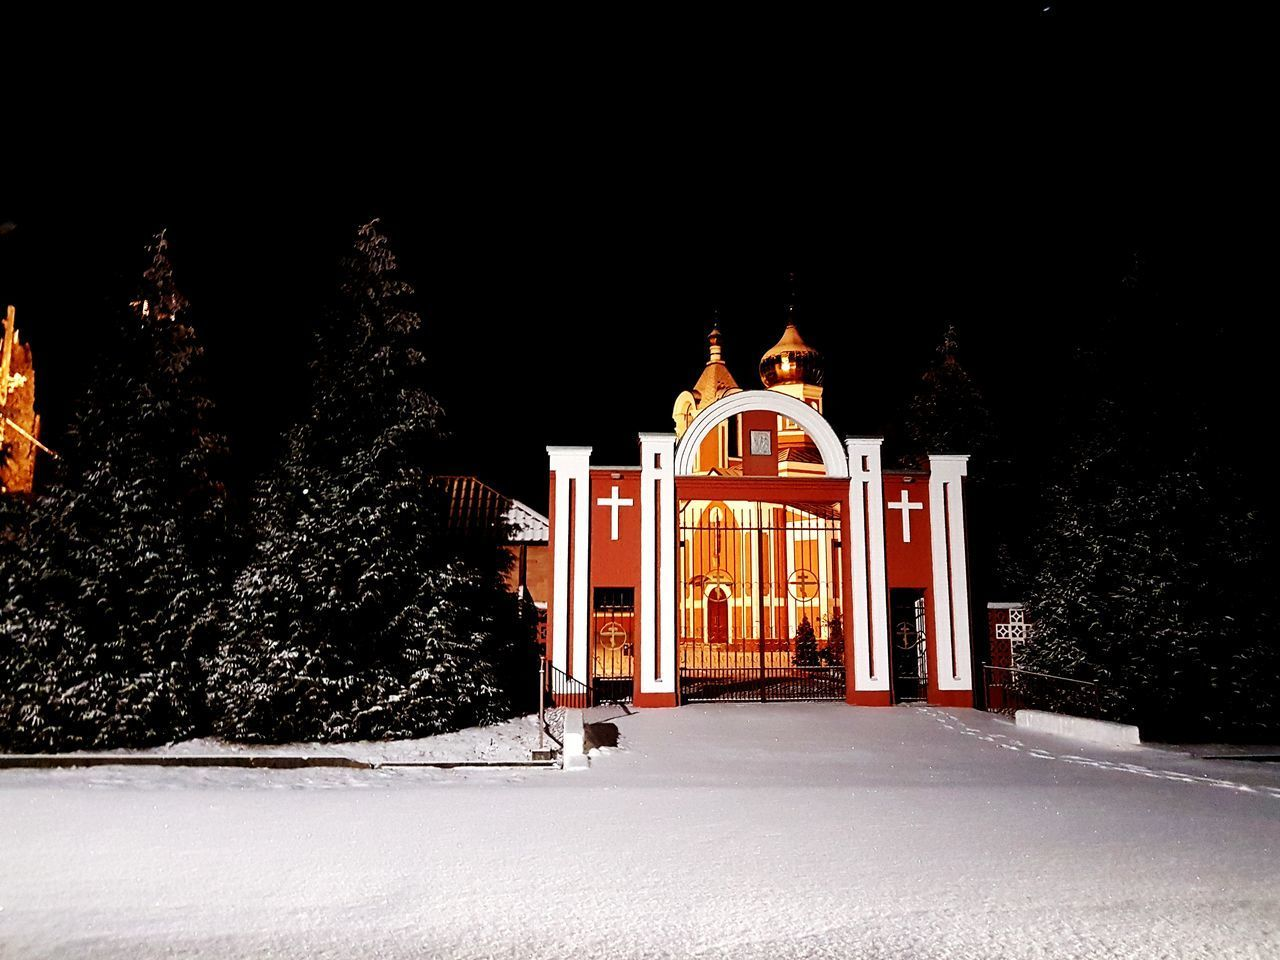 snow, cold temperature, winter, architecture, night, built structure, religion, illuminated, place of worship, belief, building, nature, building exterior, tree, spirituality, no people, covering, sky